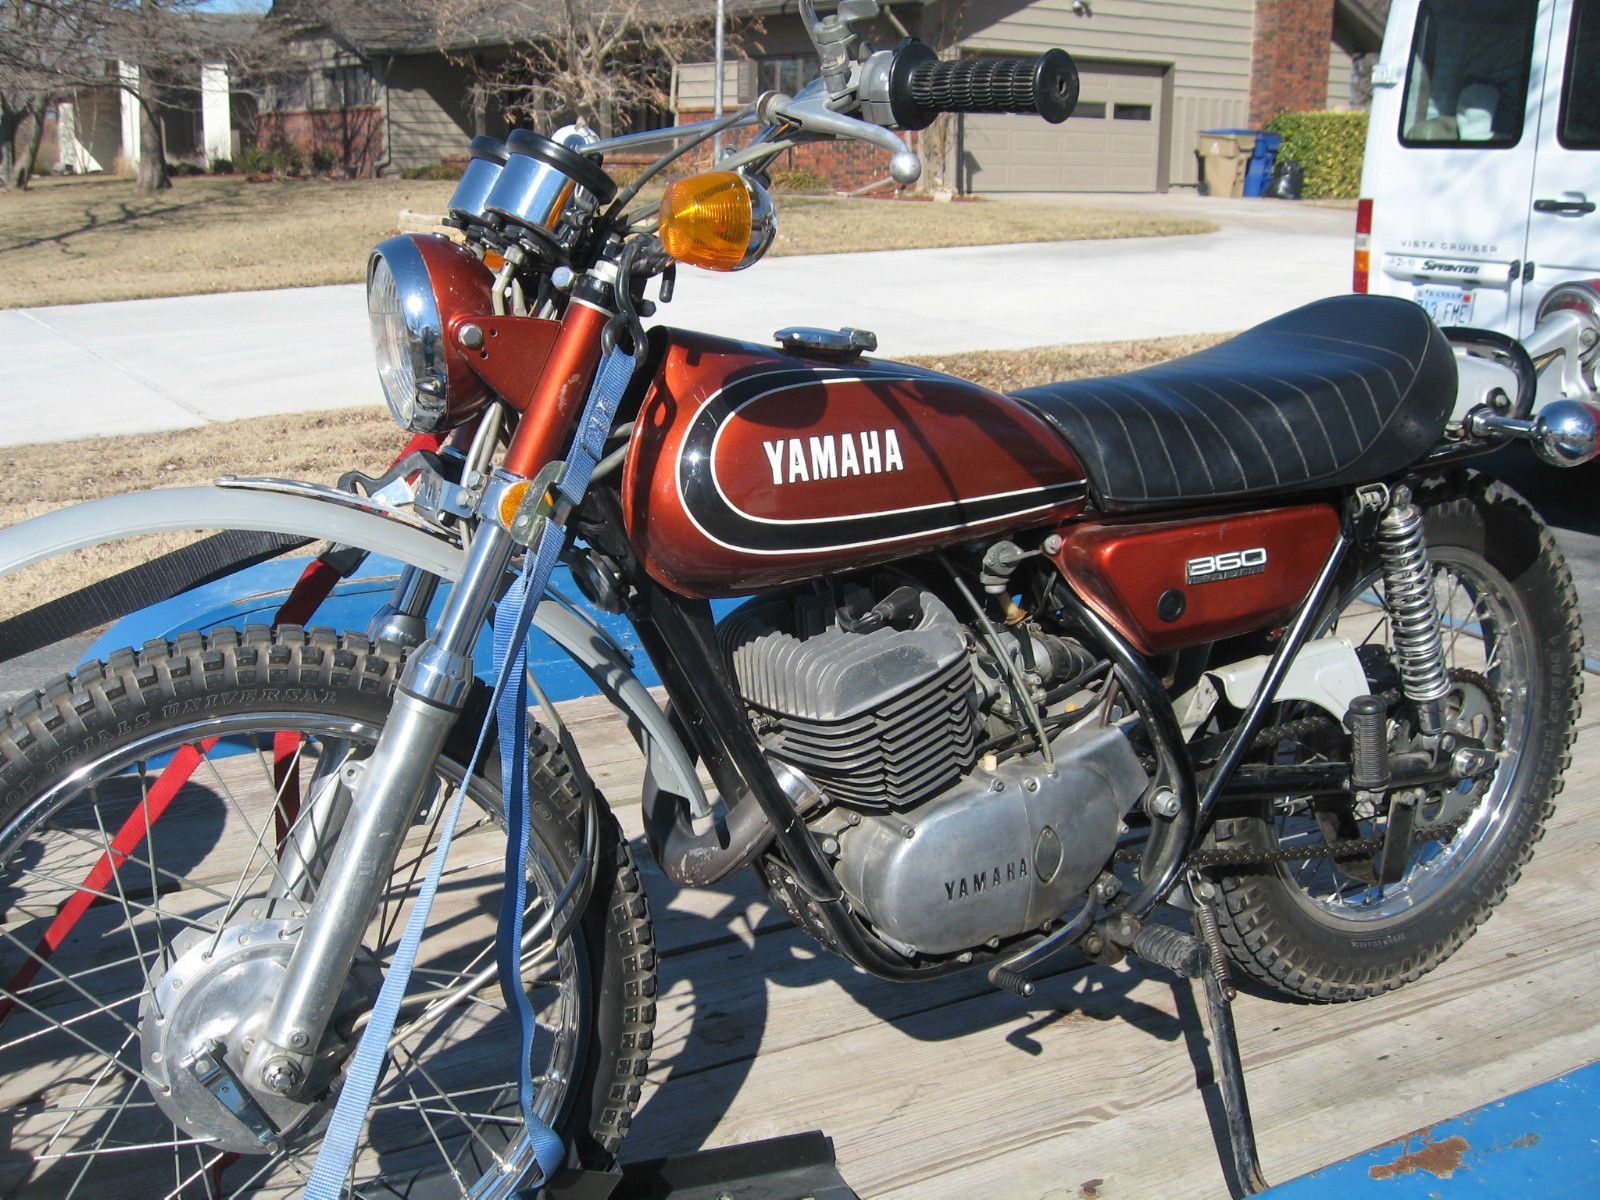 1973 yamaha 360 enduro ebay vintage yamaha enduros pinterest ebay yamaha cafe racer and. Black Bedroom Furniture Sets. Home Design Ideas